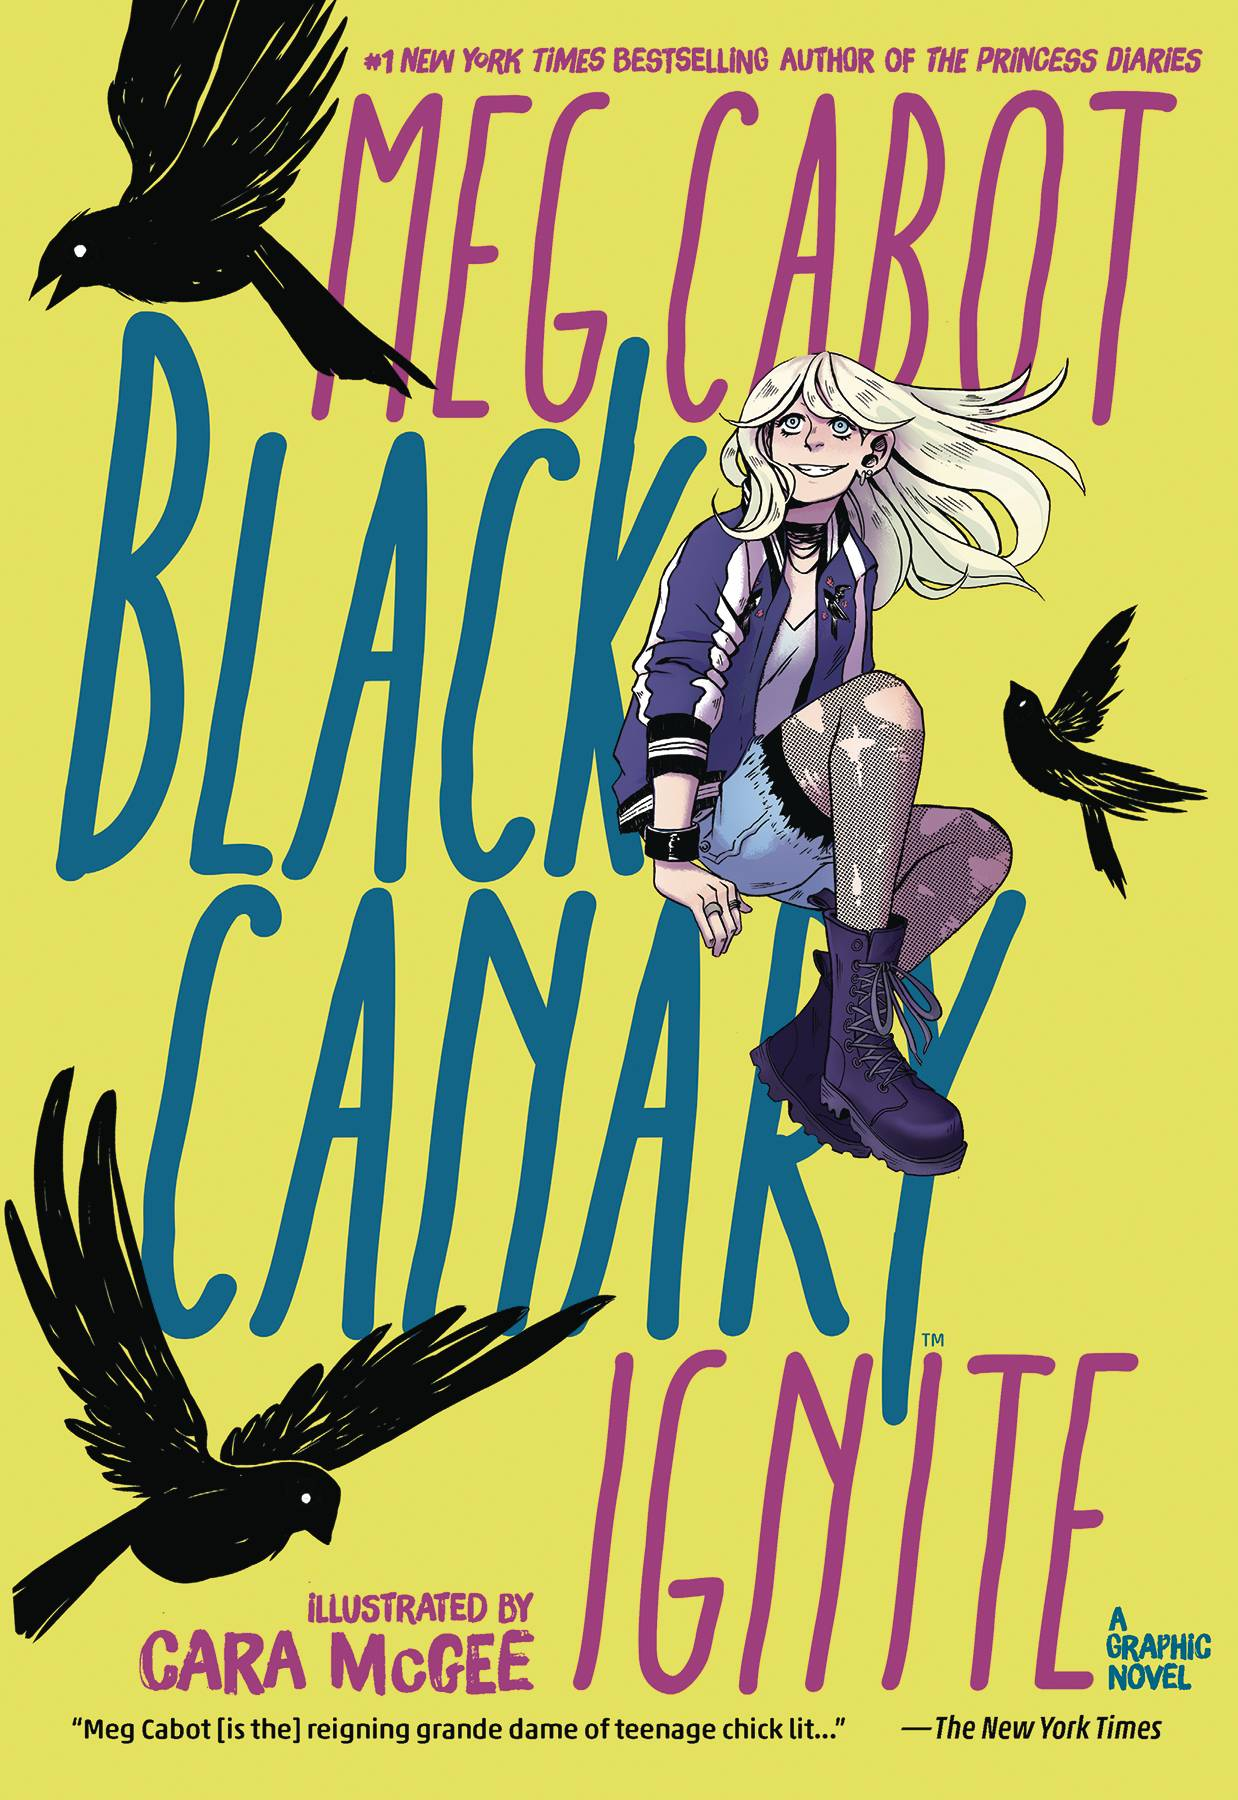 BLACK CANARY IGNITE TP DC ZOOM.jpg